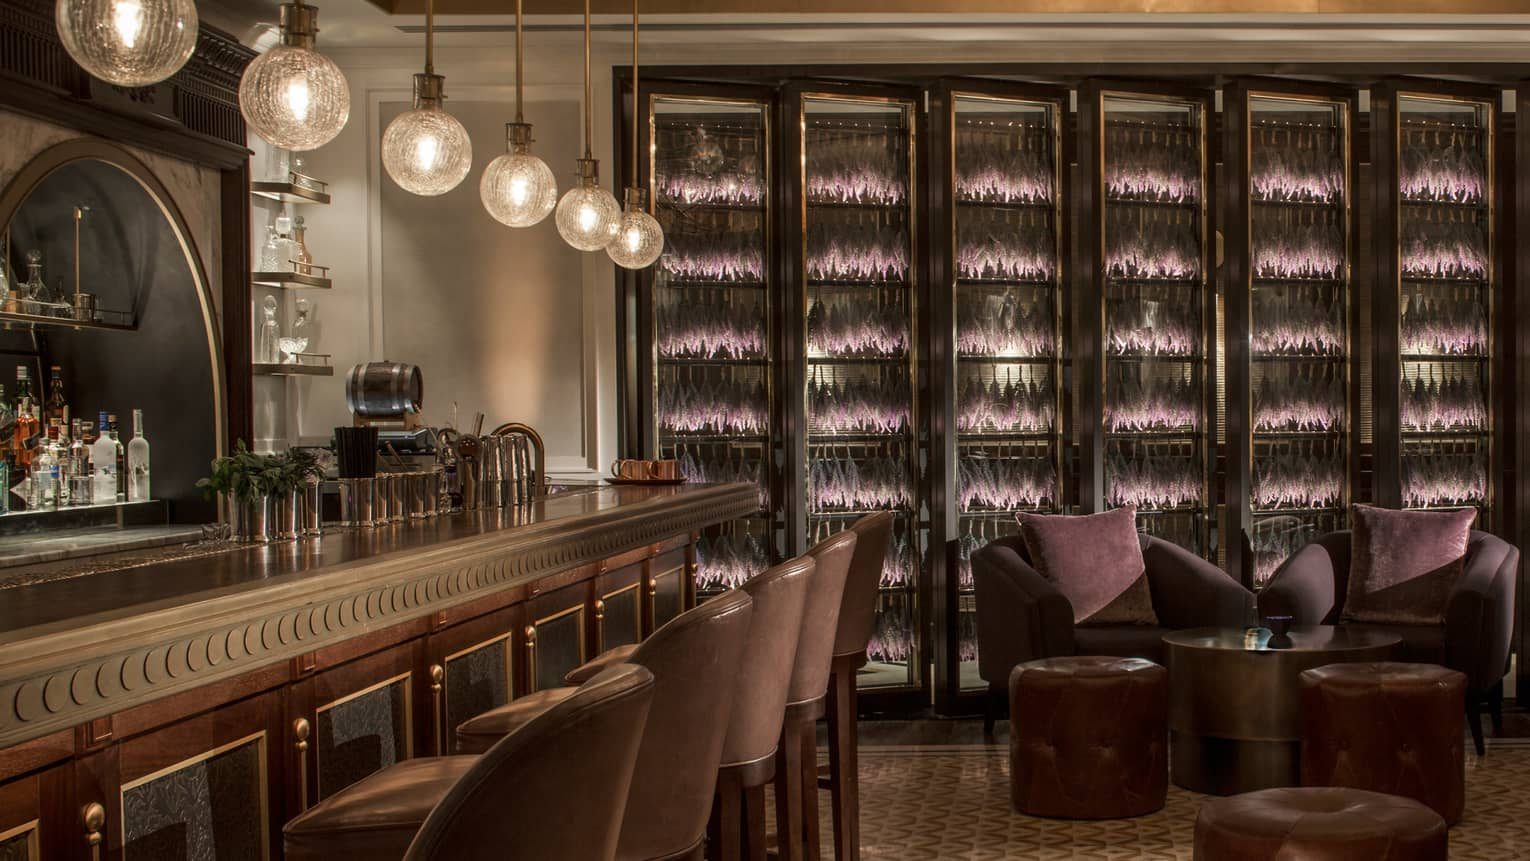 The bar at La Capitale with globe lighting, dark wood paneling, brown leather chairs and purple accents